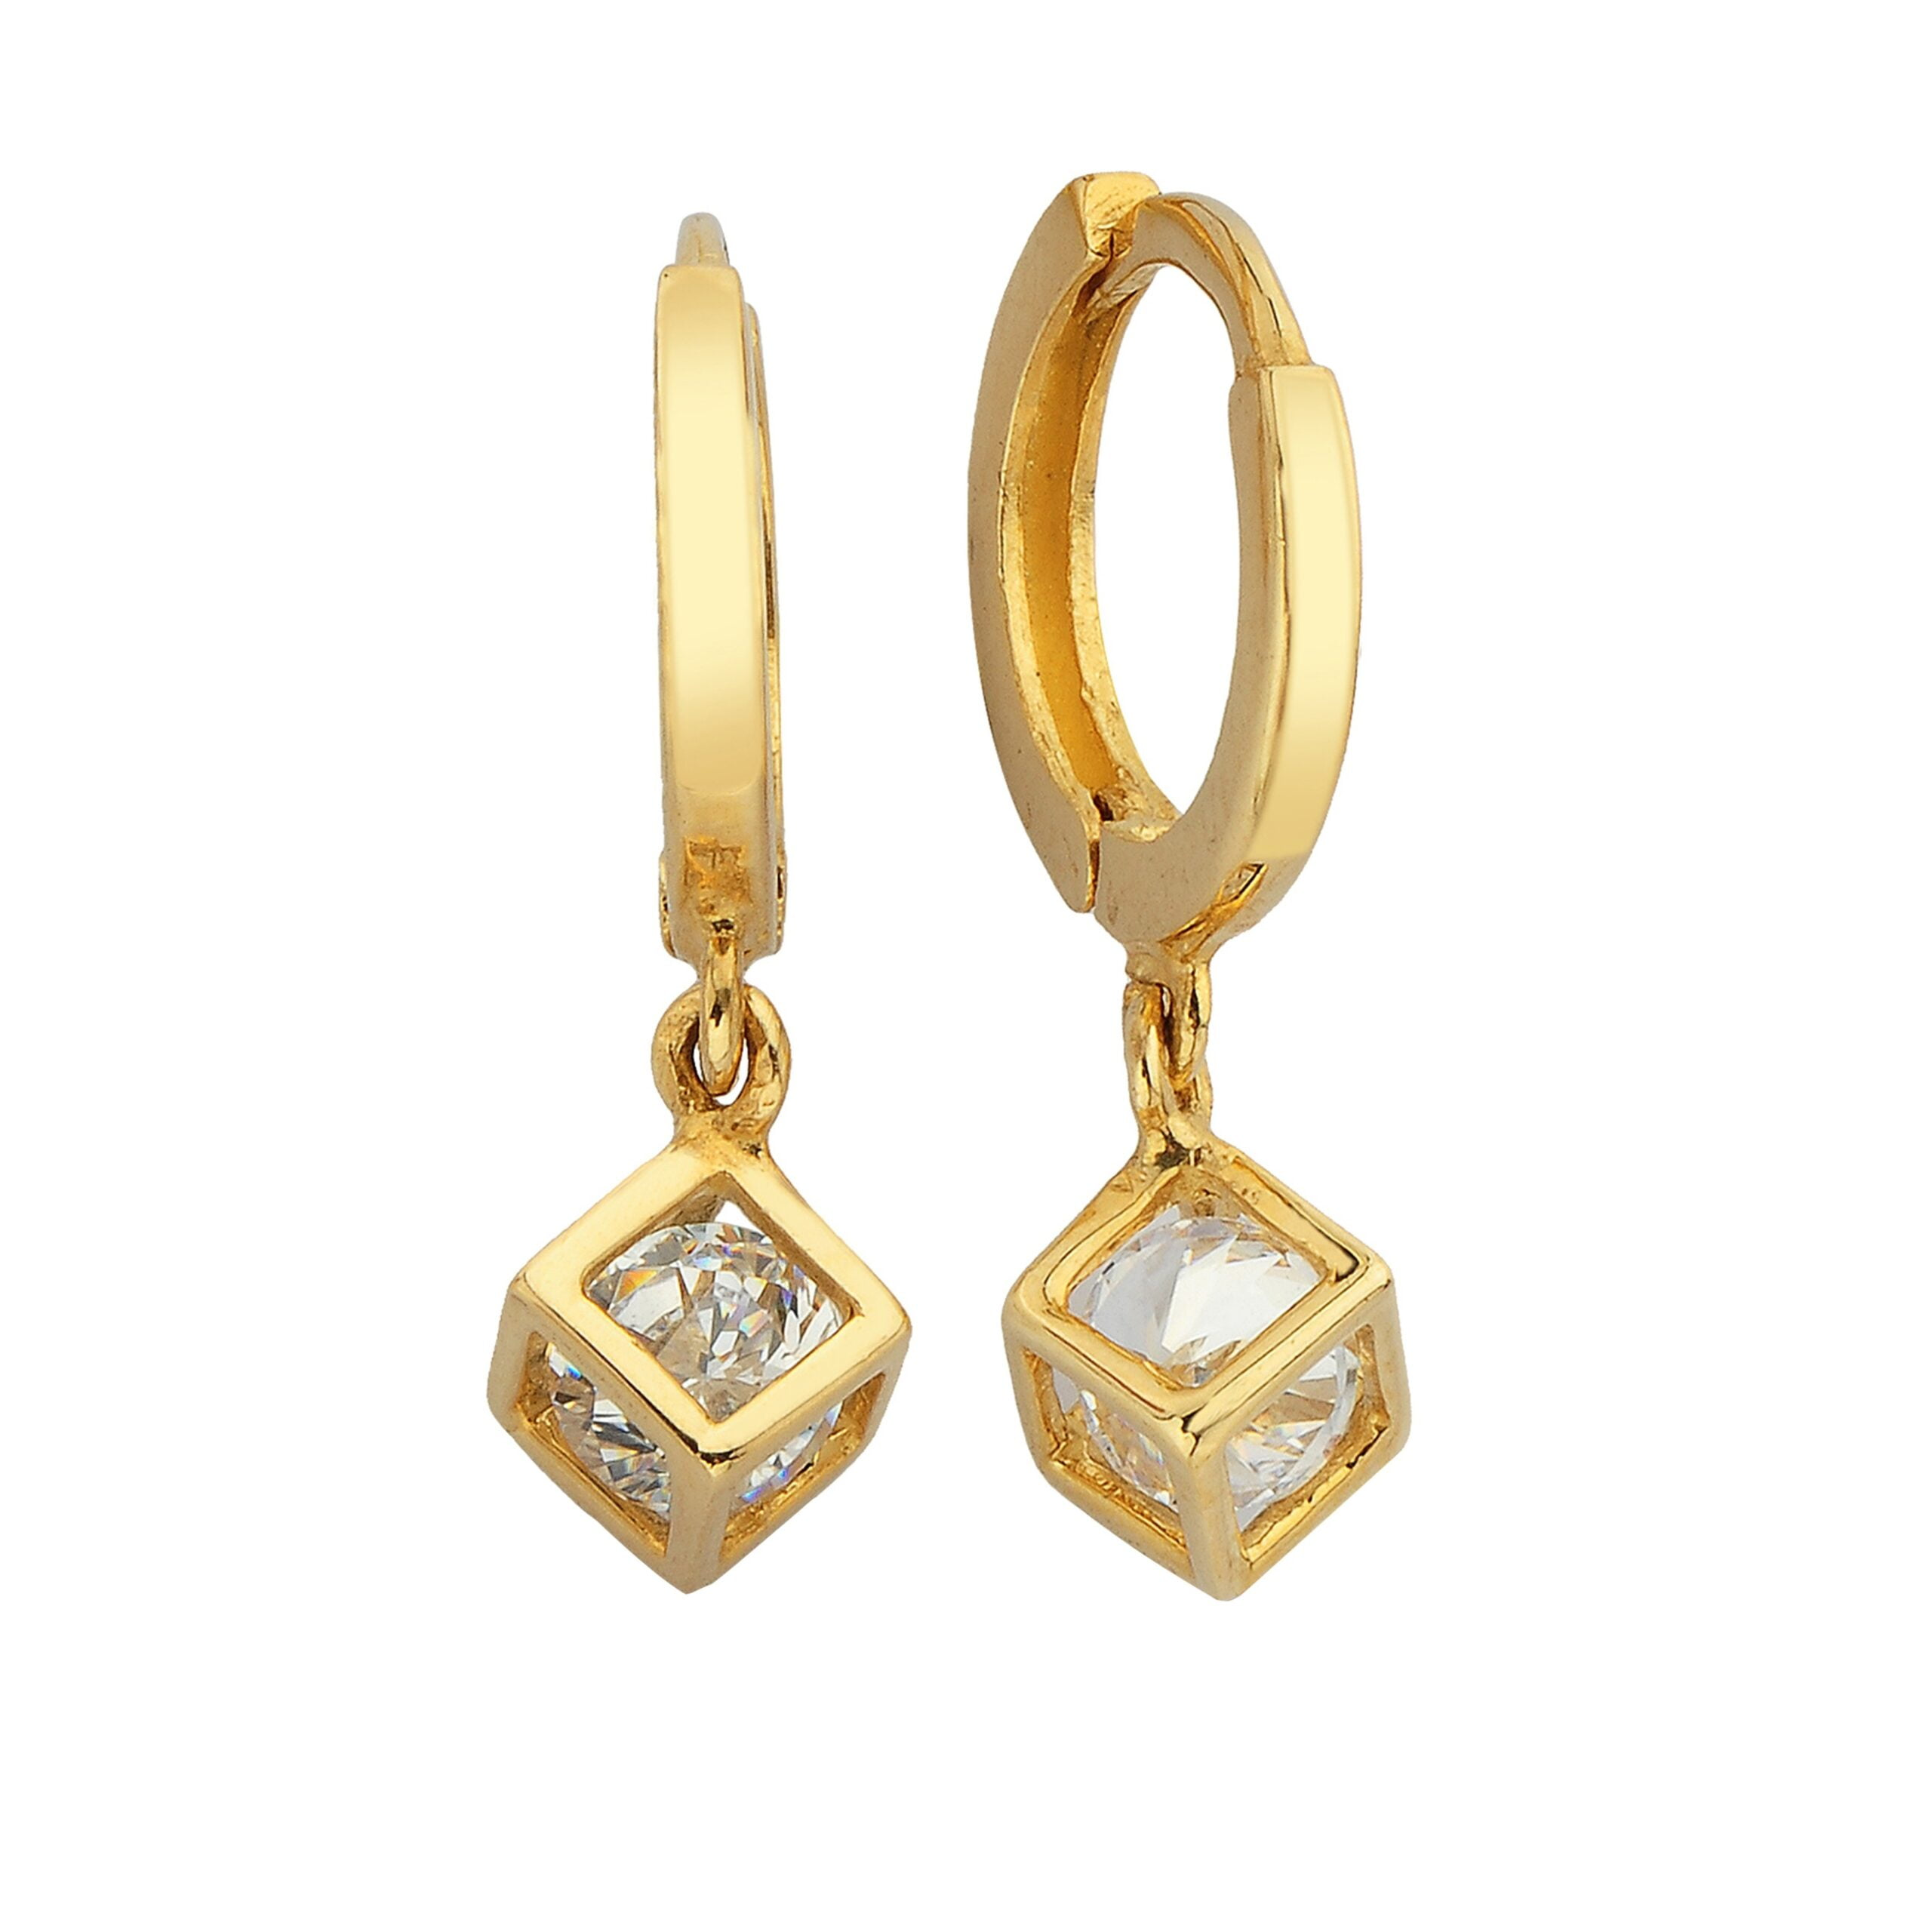 14K Real Solid Gold Cube Dangle Drop Earrings for Women birthday gift handmade jewelry geometric christmas xmas mother idea